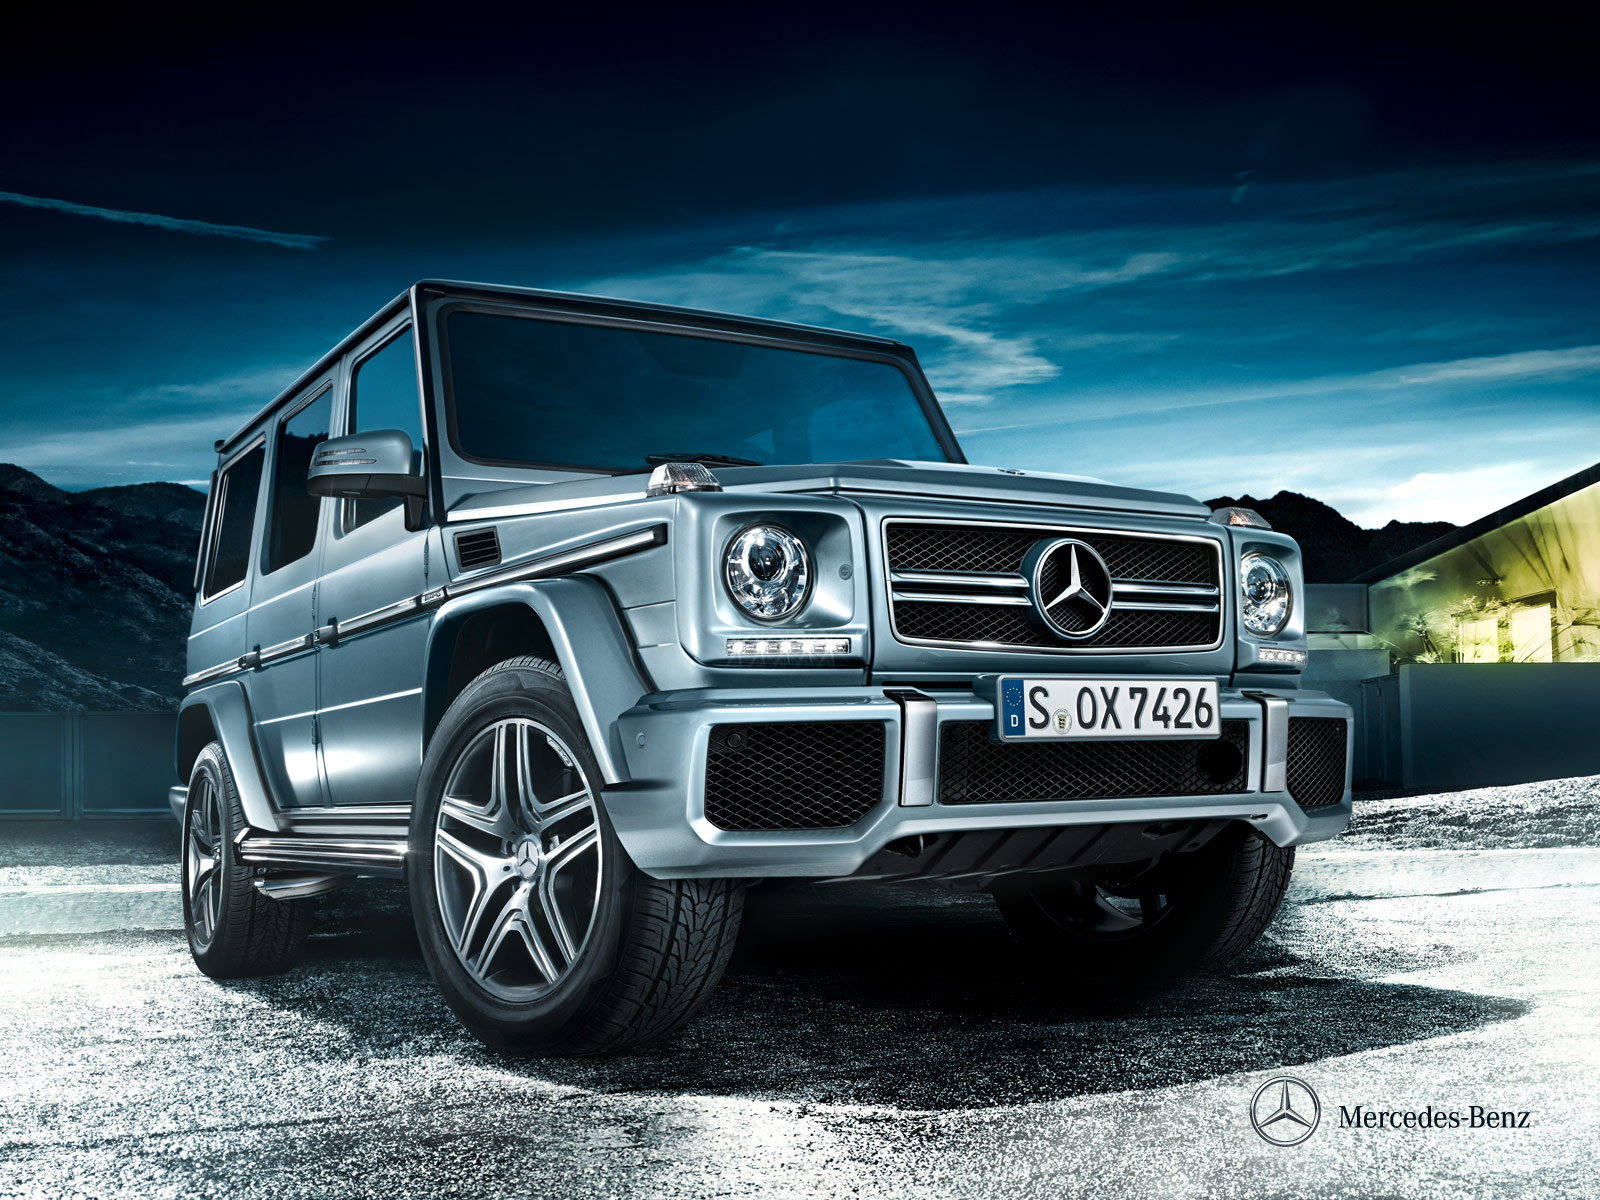 2014 mercedes benz g class blue 200 interior and exterior images. Cars Review. Best American Auto & Cars Review